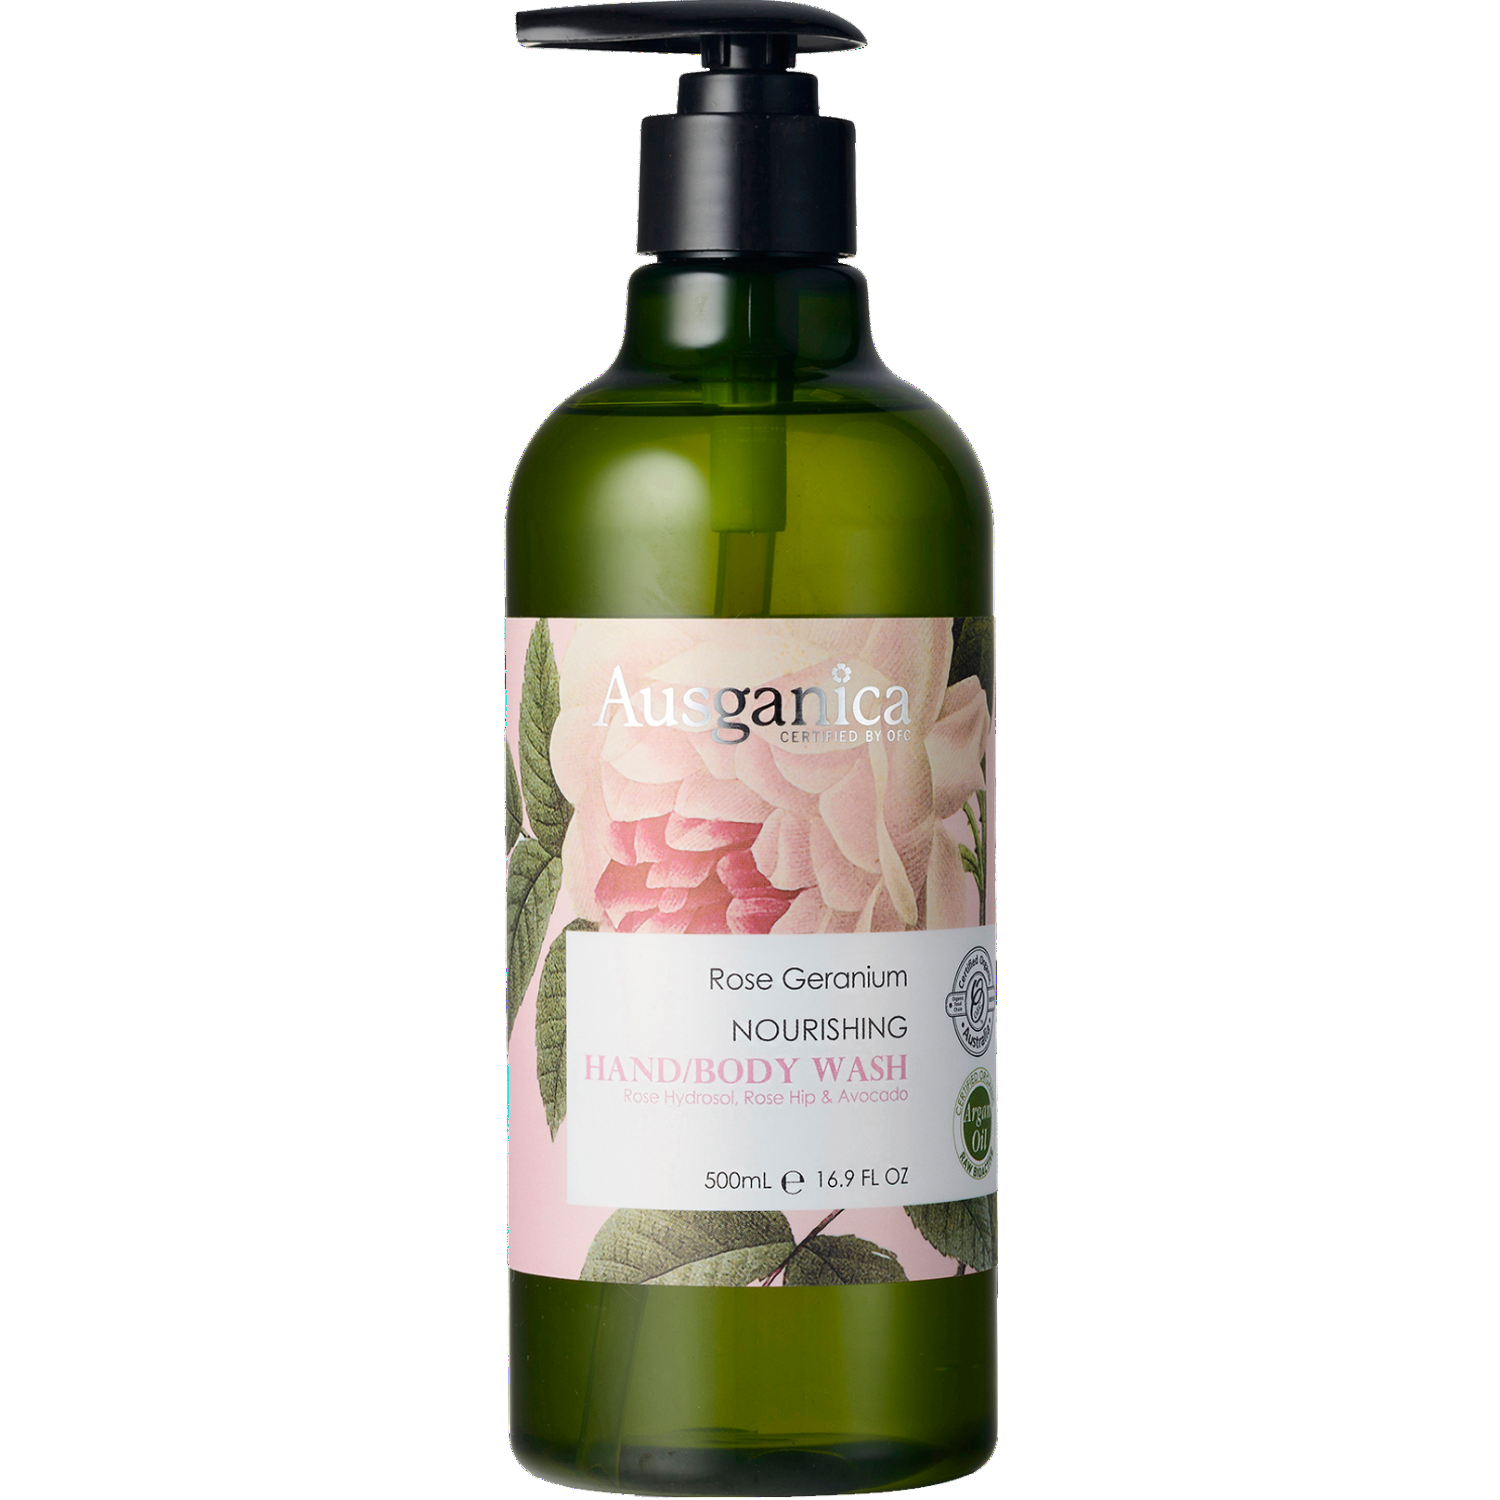 Ausganica Rose Geranium Nourishing Hand and Body Wash 500ml